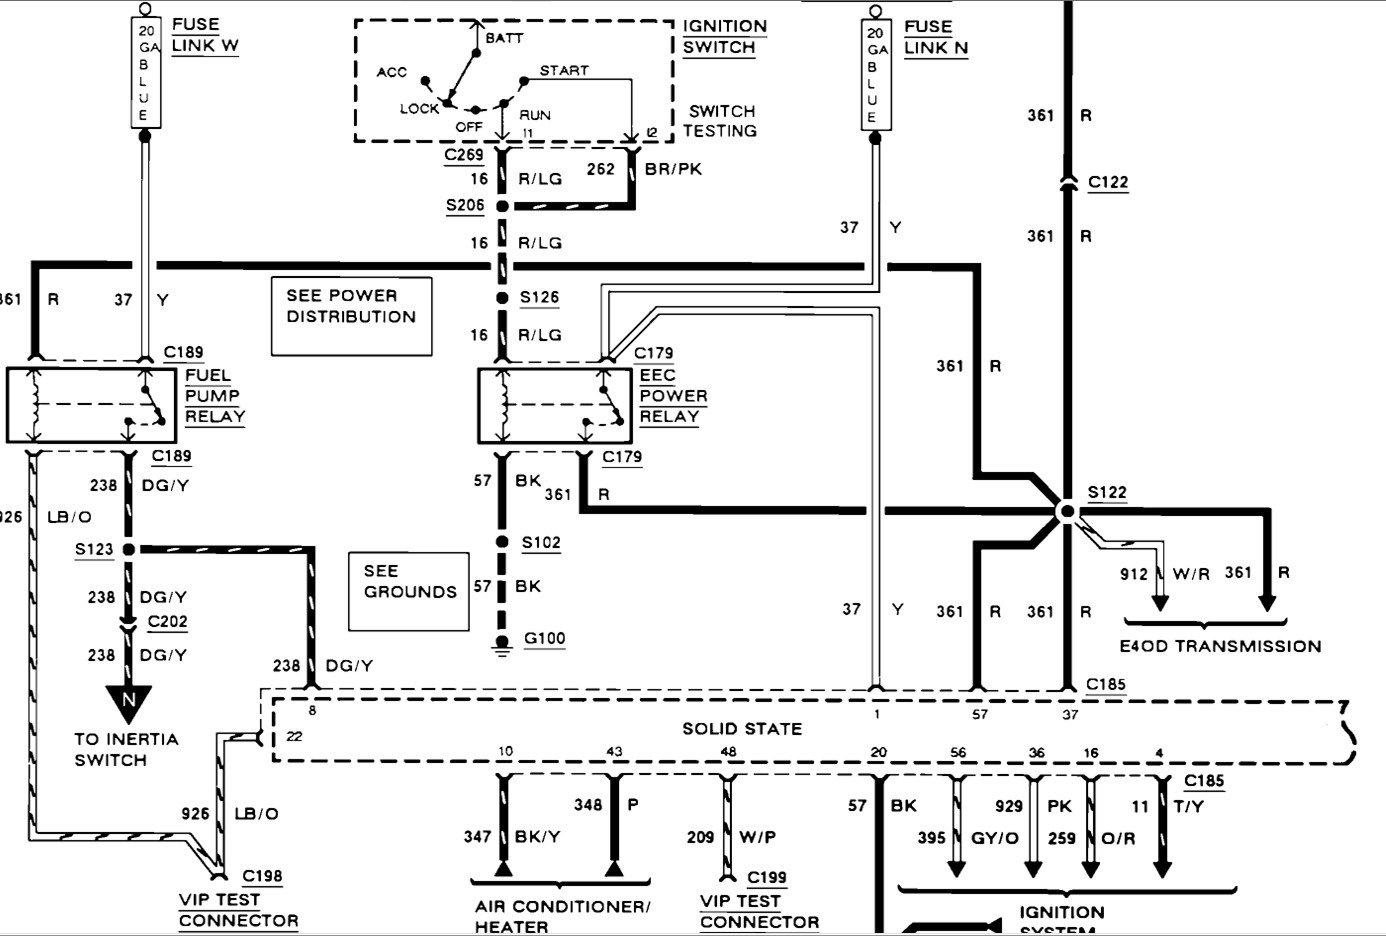 similiar ford f 250 wiring diagram keywords ford f250 pickup need a wiring diagram for a 1991 ford f250